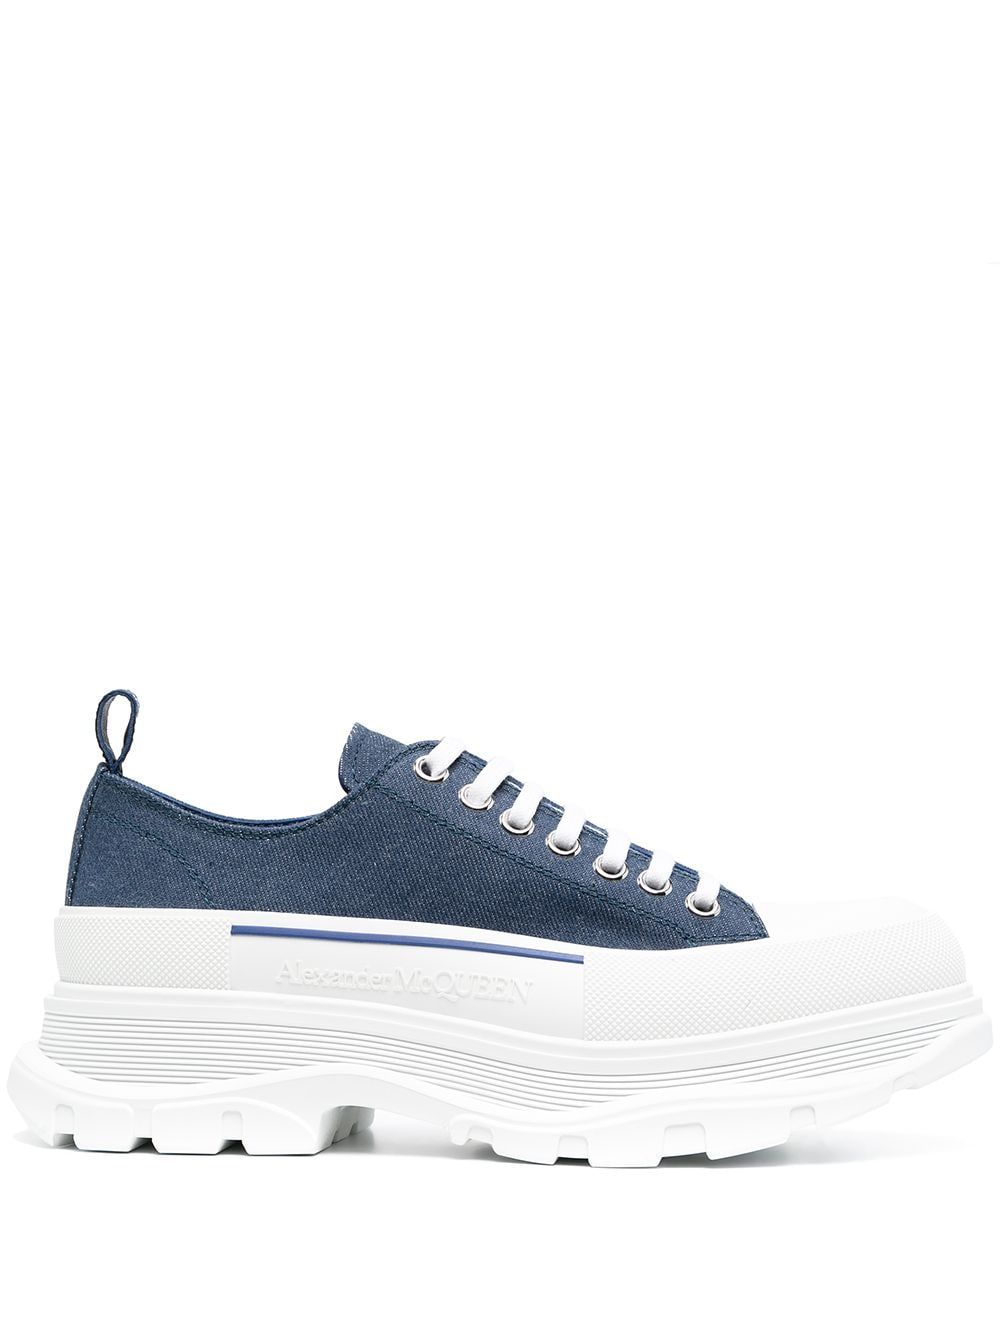 Alexander Mcqueen ALEXANDER MCQUEEN MEN'S BLUE LEATHER SNEAKERS